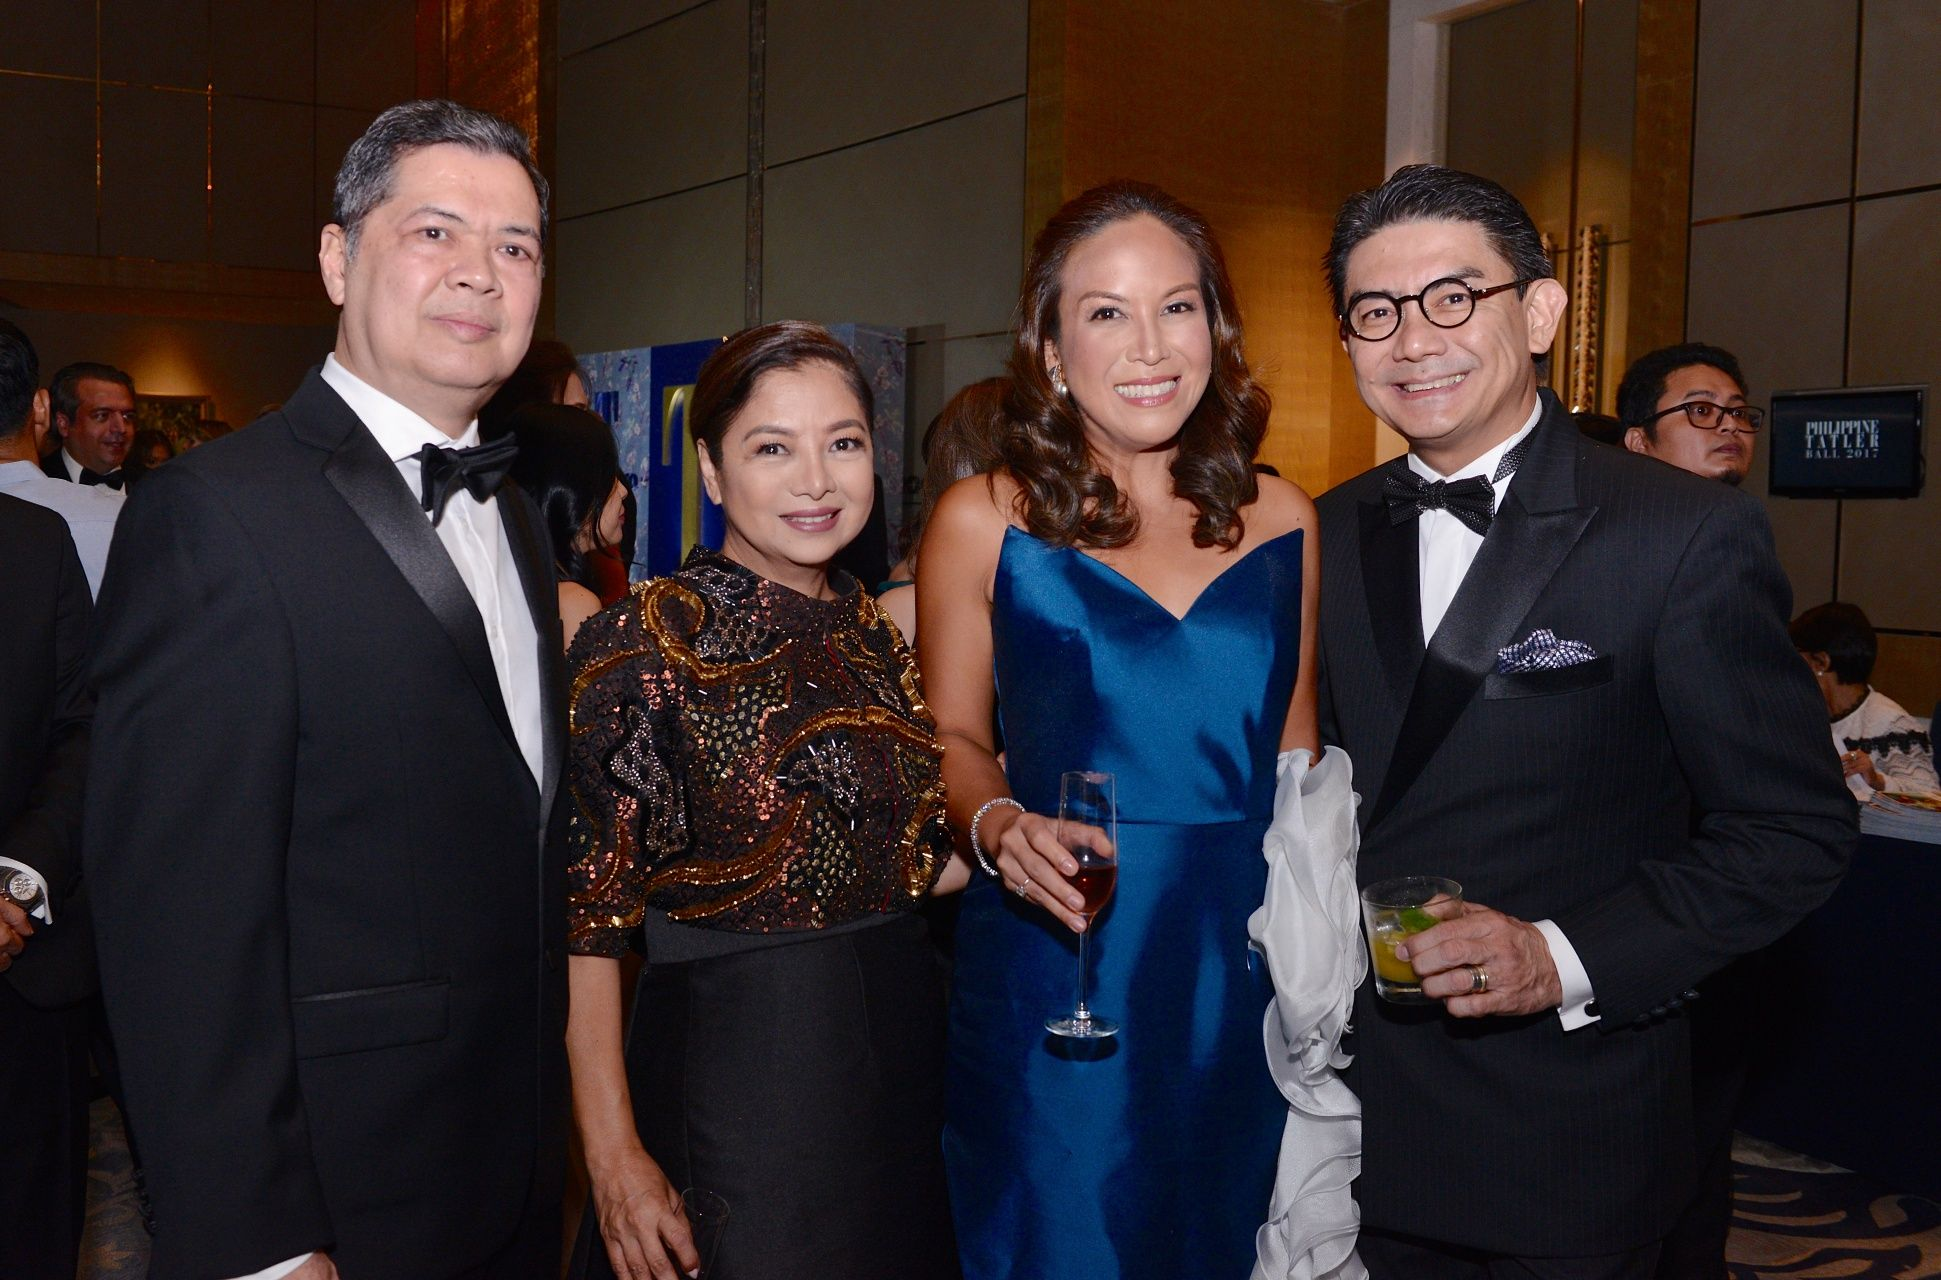 Norberto and Wynn Wynn Ong with Robert and Dr. Christine Santos Francisco